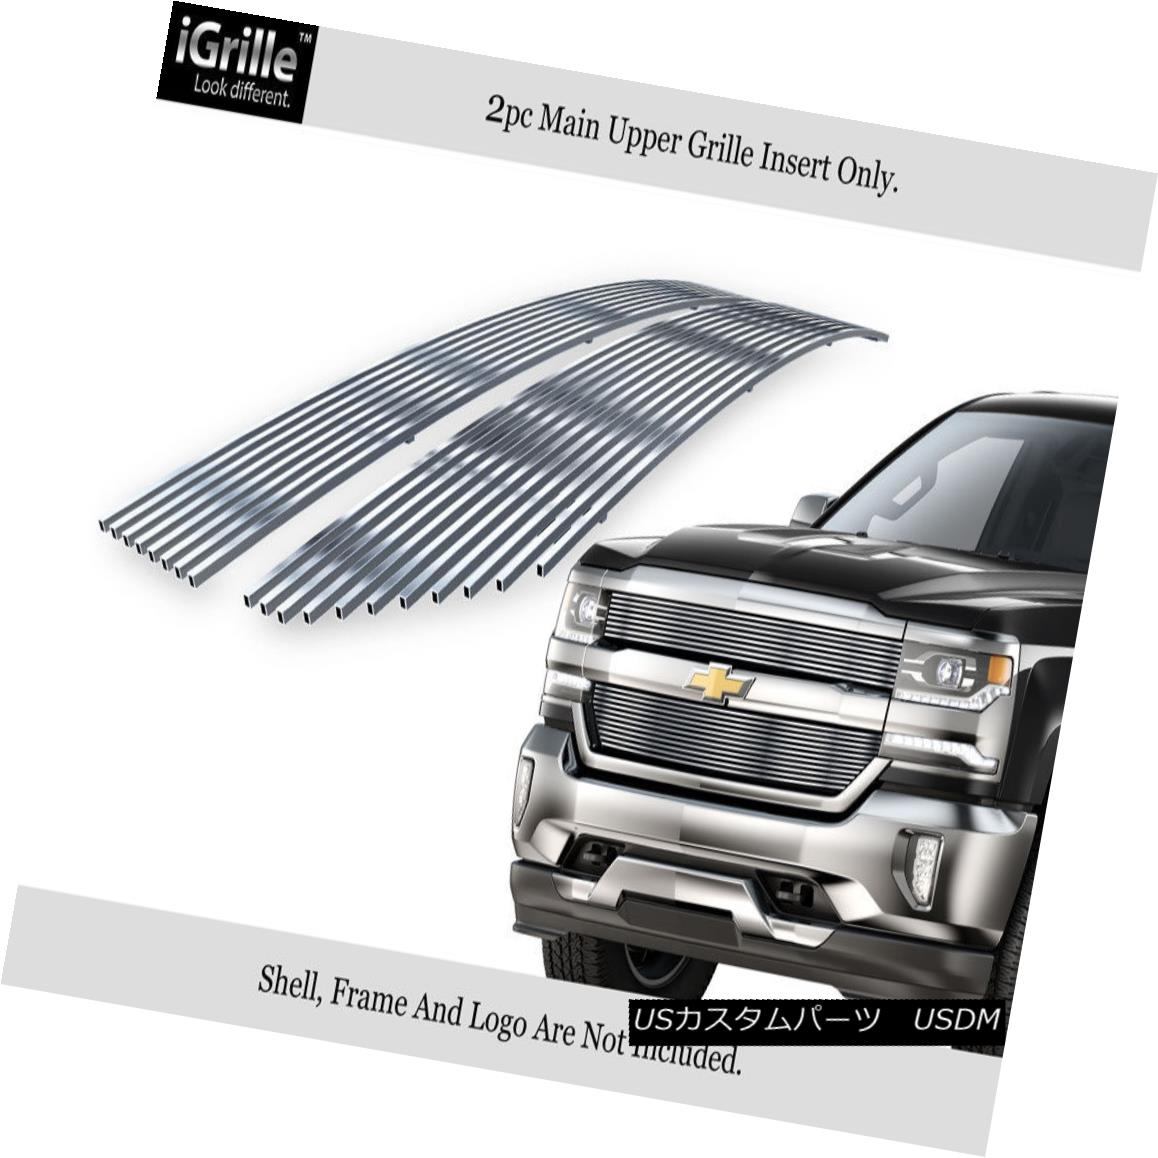 USグリル For 2016-2018 Chevy Silverado 1500 Reg Model Stainless Steel Billet Grille 2016-2018 Chevy Silverado 1500 Regモデルステンレススチールビレットグリル